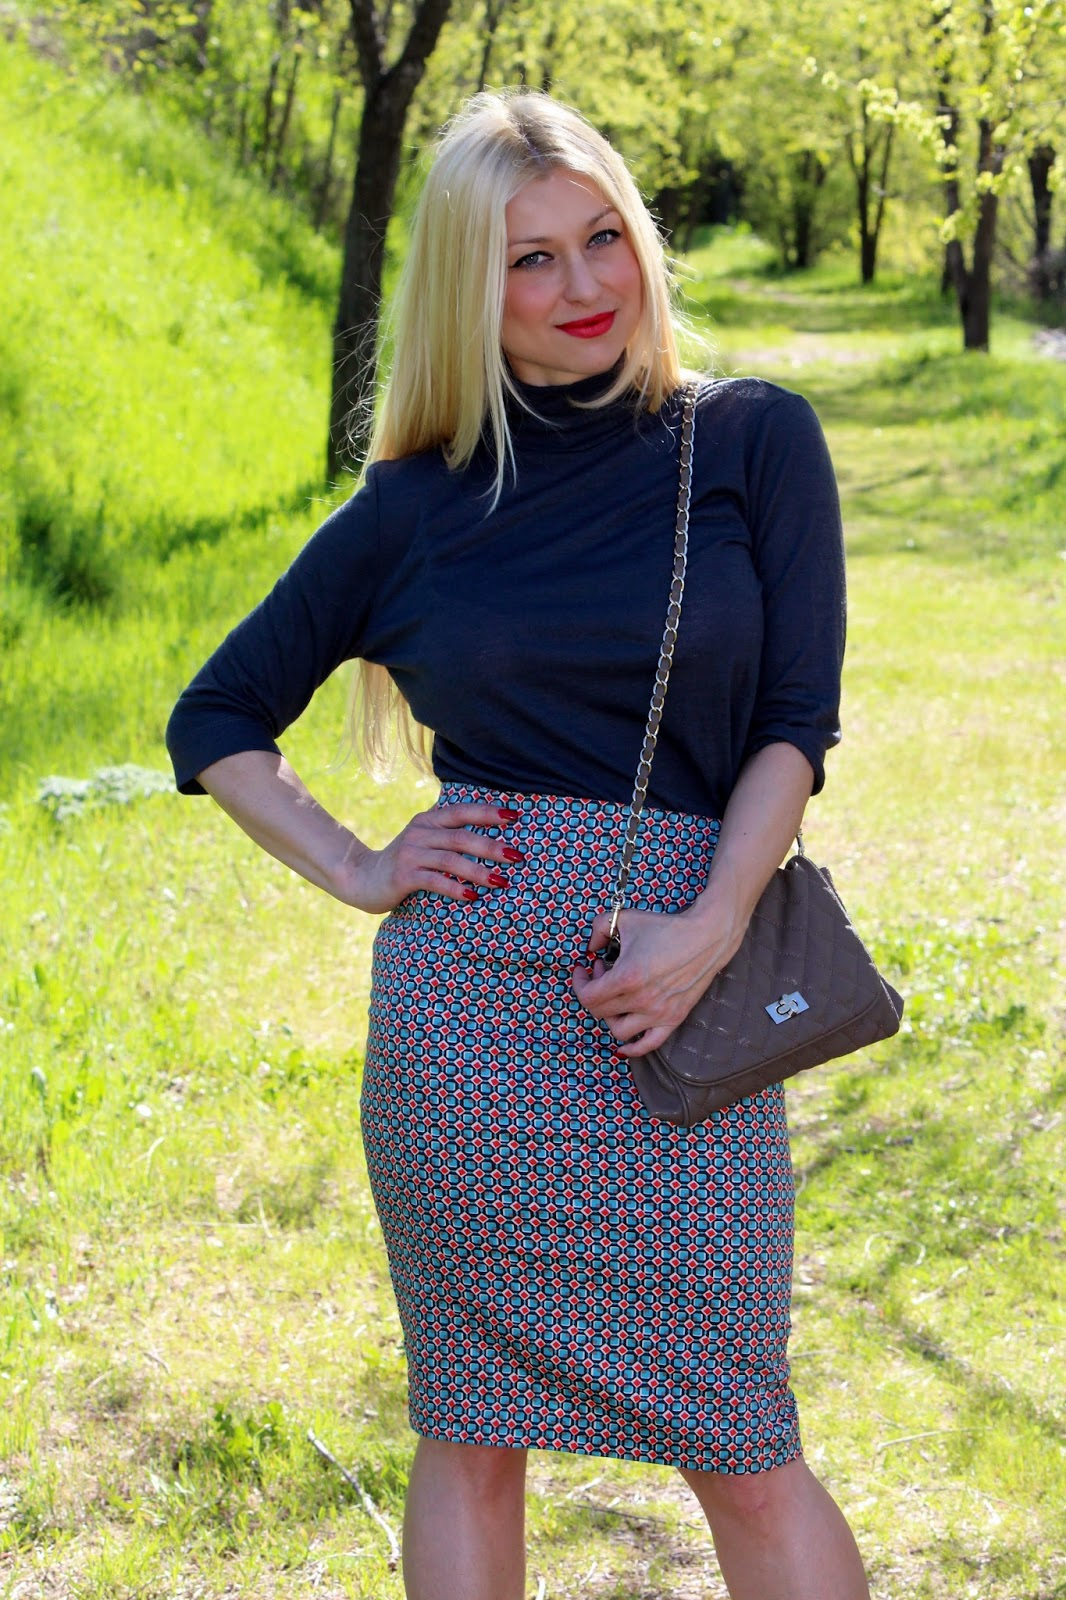 falda de tubo/ pencil skirt